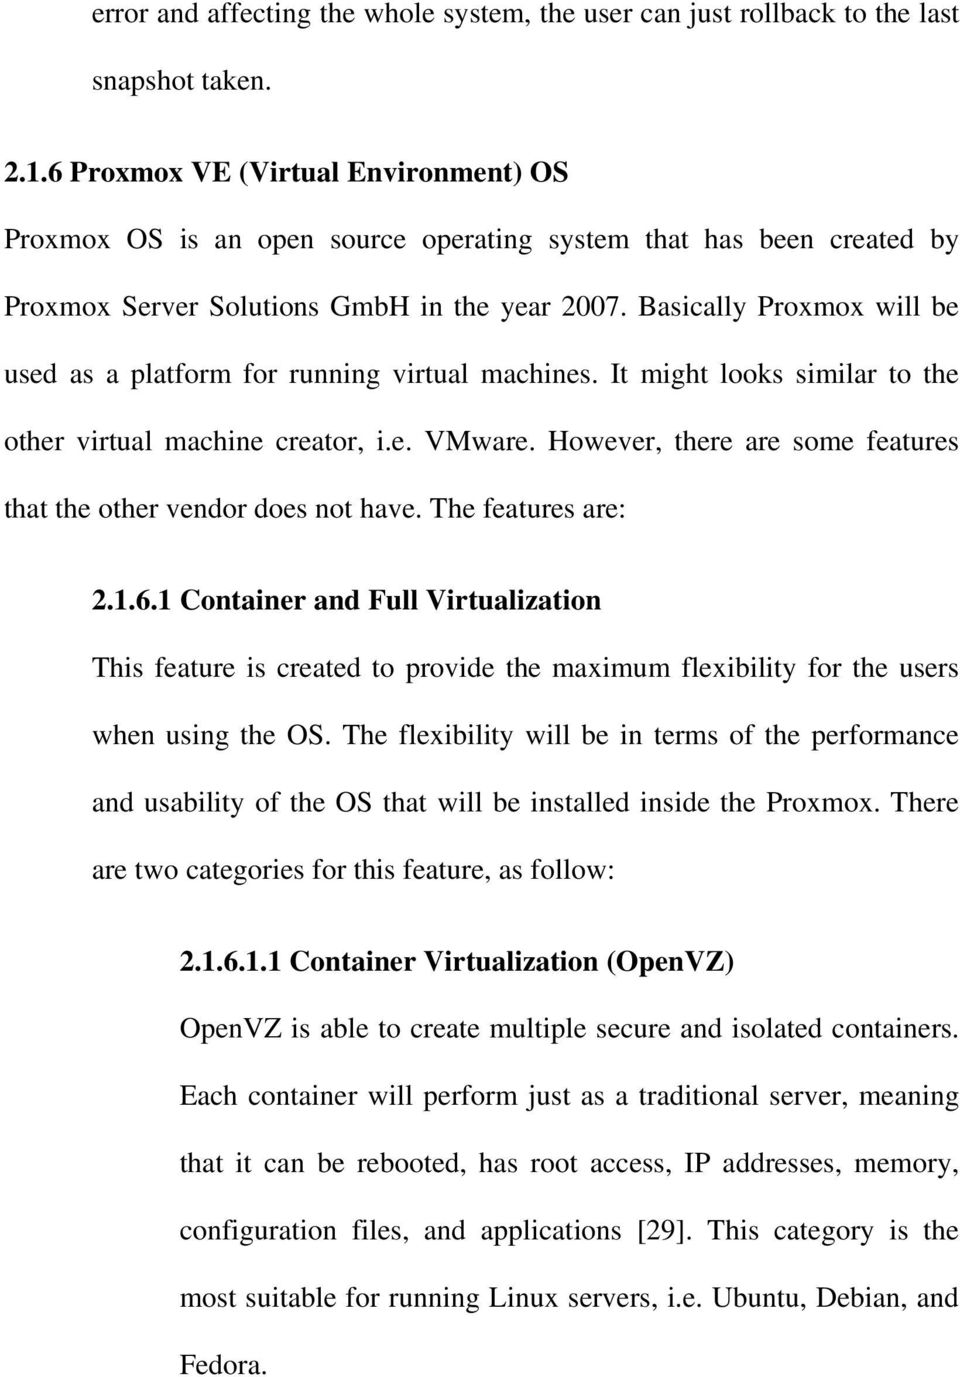 Basically Proxmox will be used as a platform for running virtual machines. It might looks similar to the other virtual machine creator, i.e. VMware.